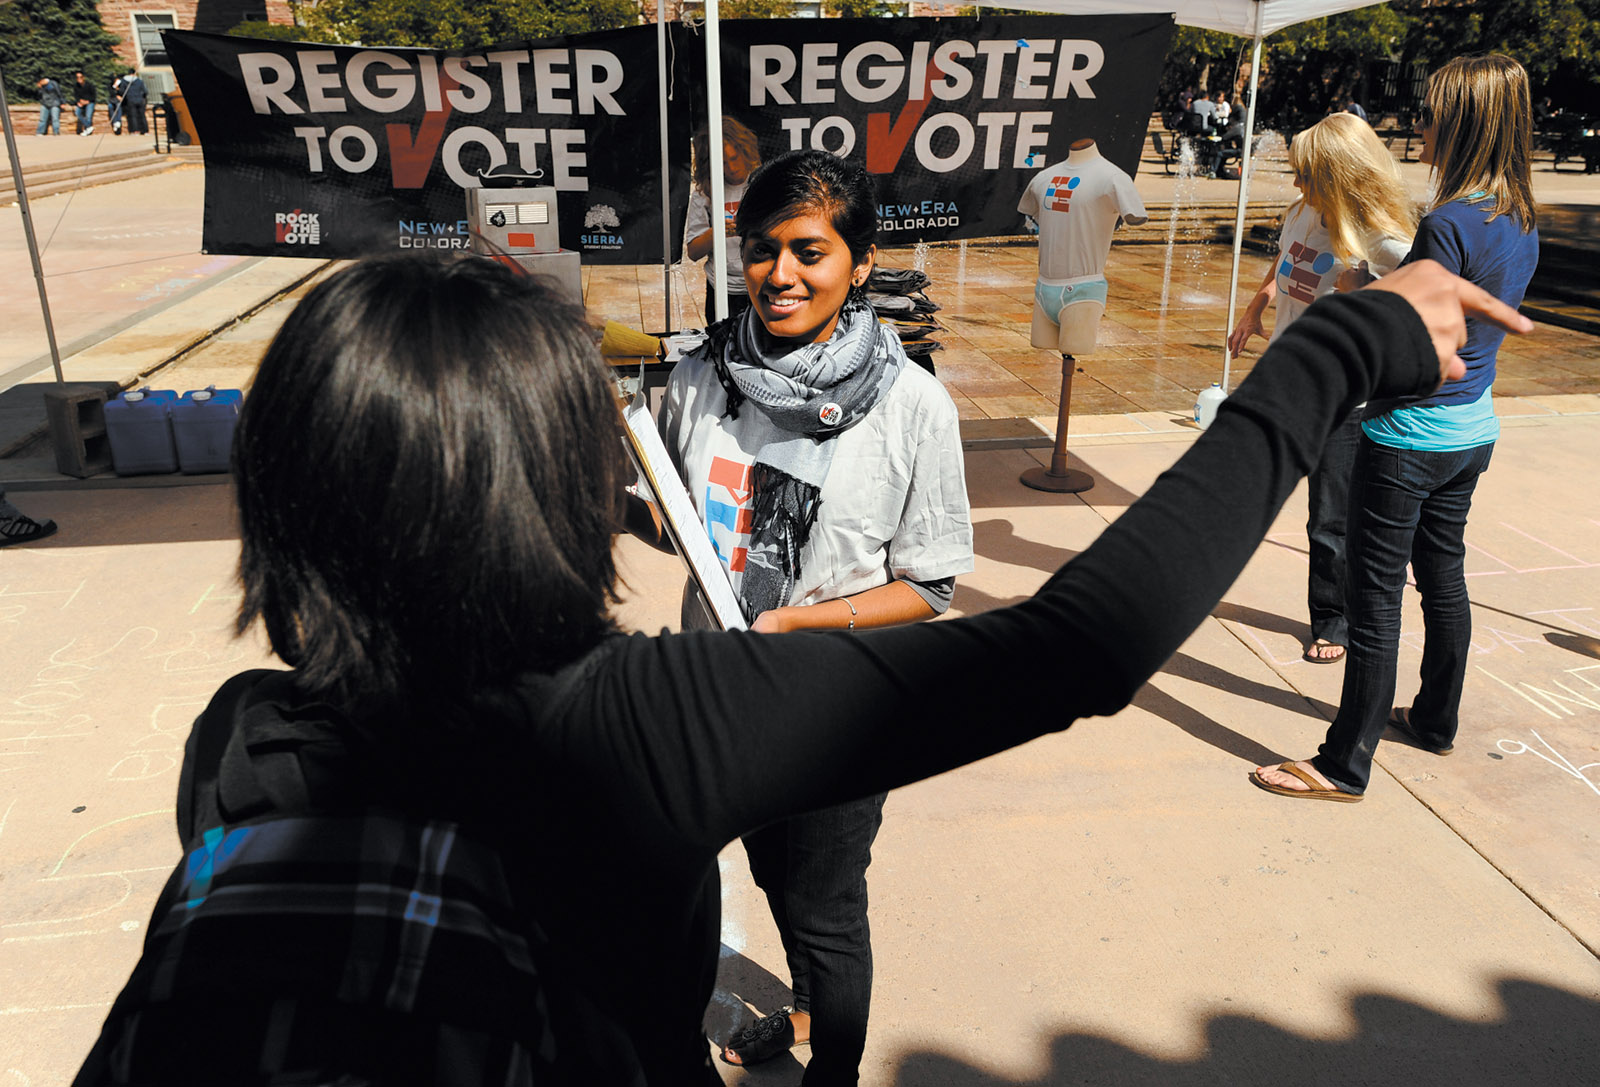 A member of the youth-based grassroots organization New Era Colorado registering voters at the University of Colorado at Boulder, September 2011